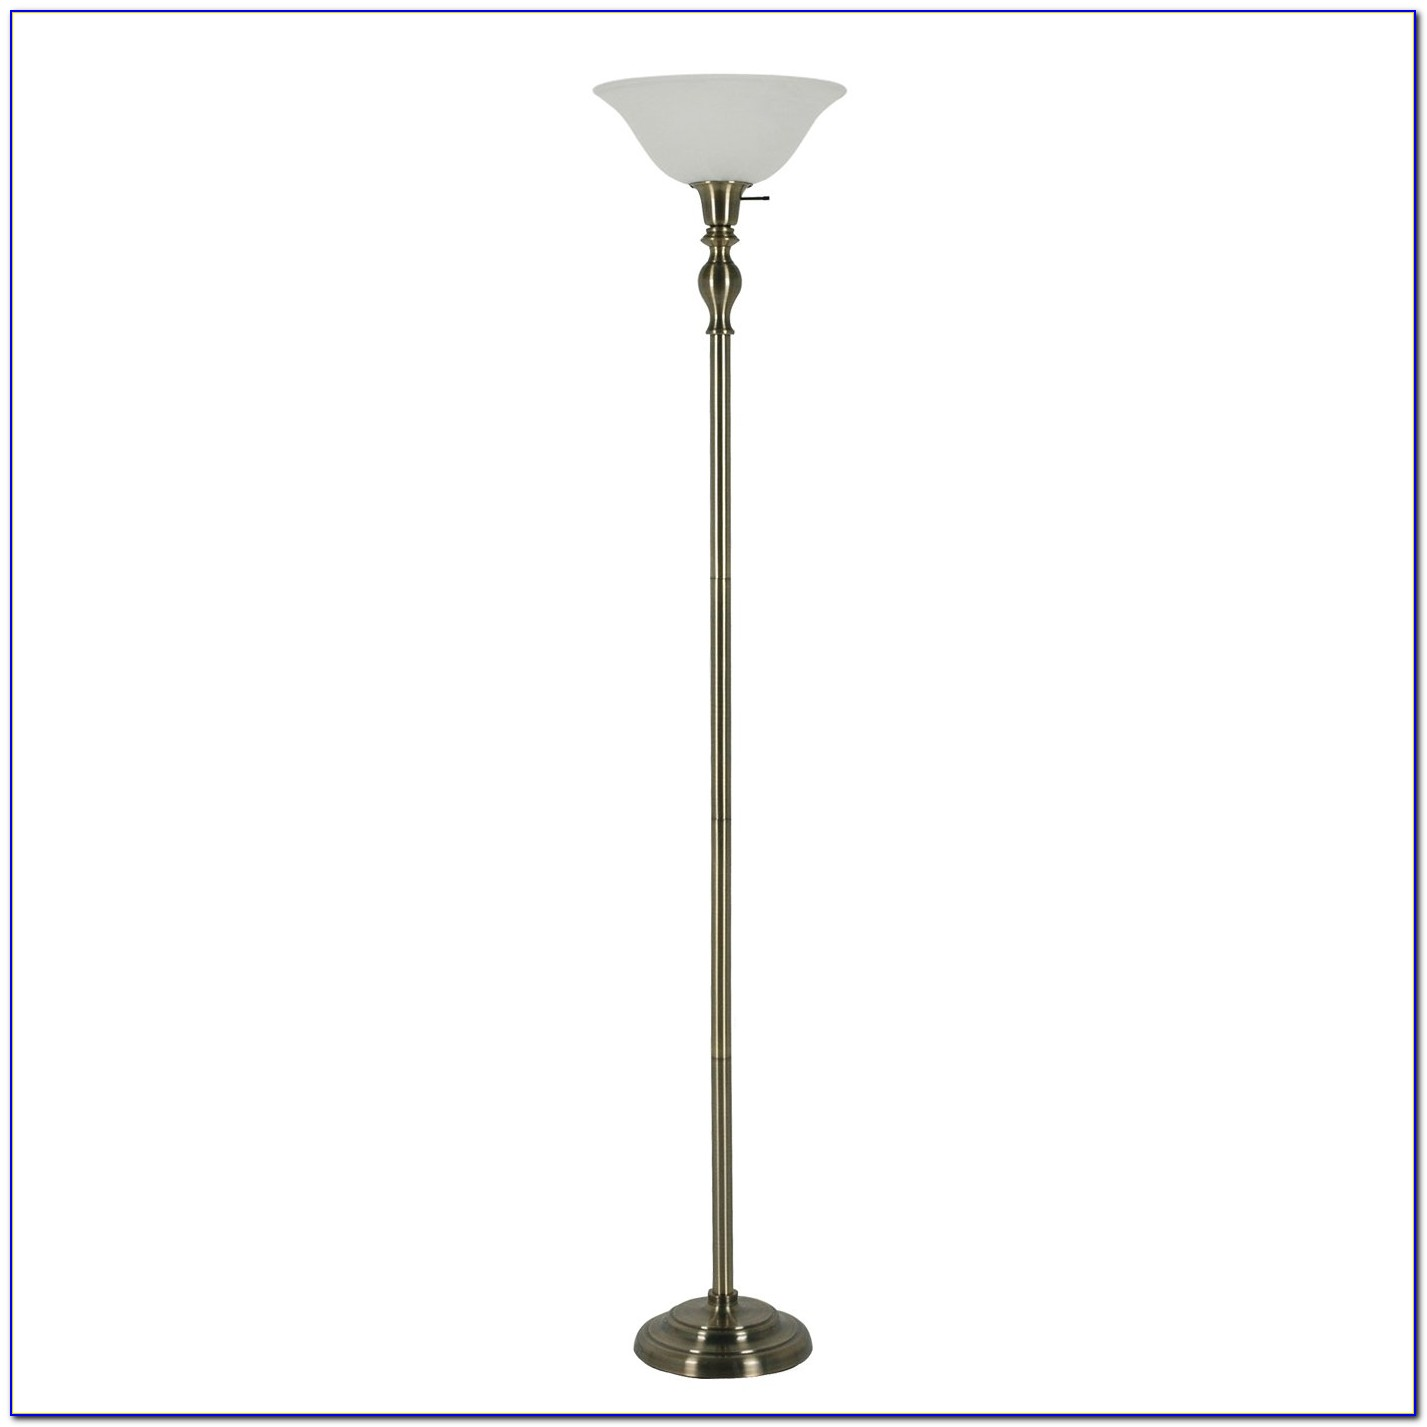 Vintage Brass Torchiere Floor Lamp